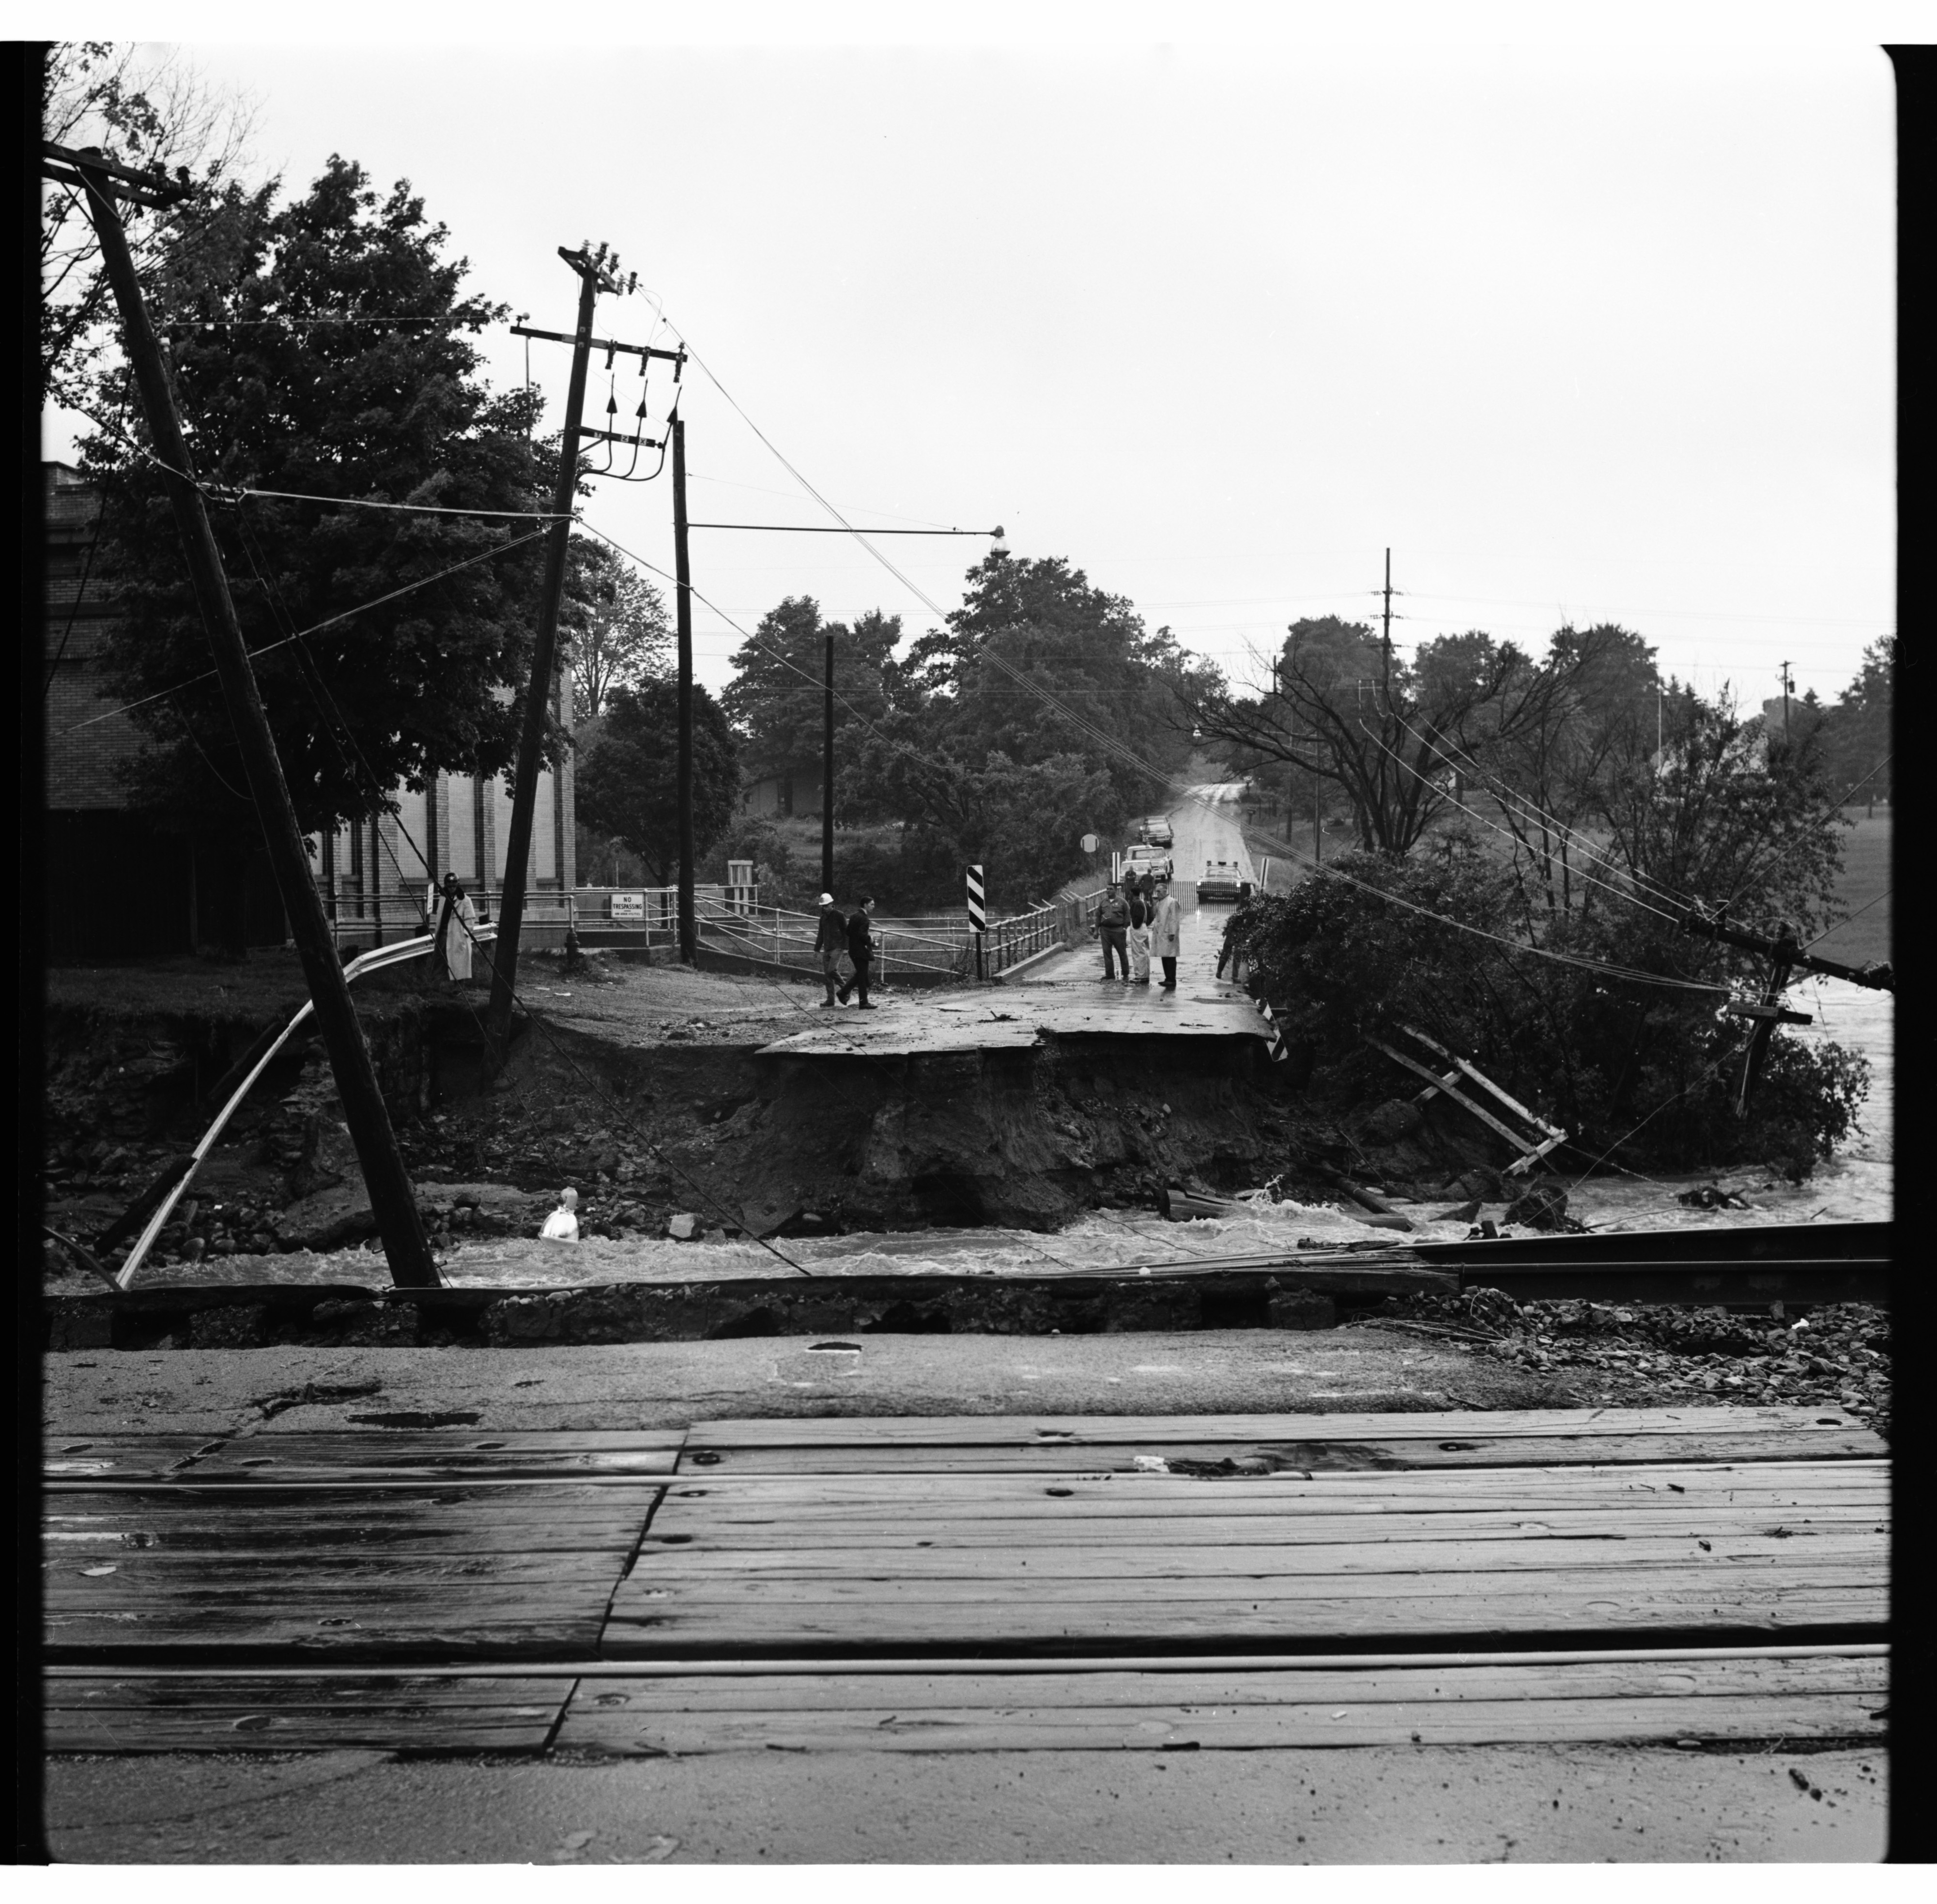 Washed Out Dixboro Road, June 1968 Flood image